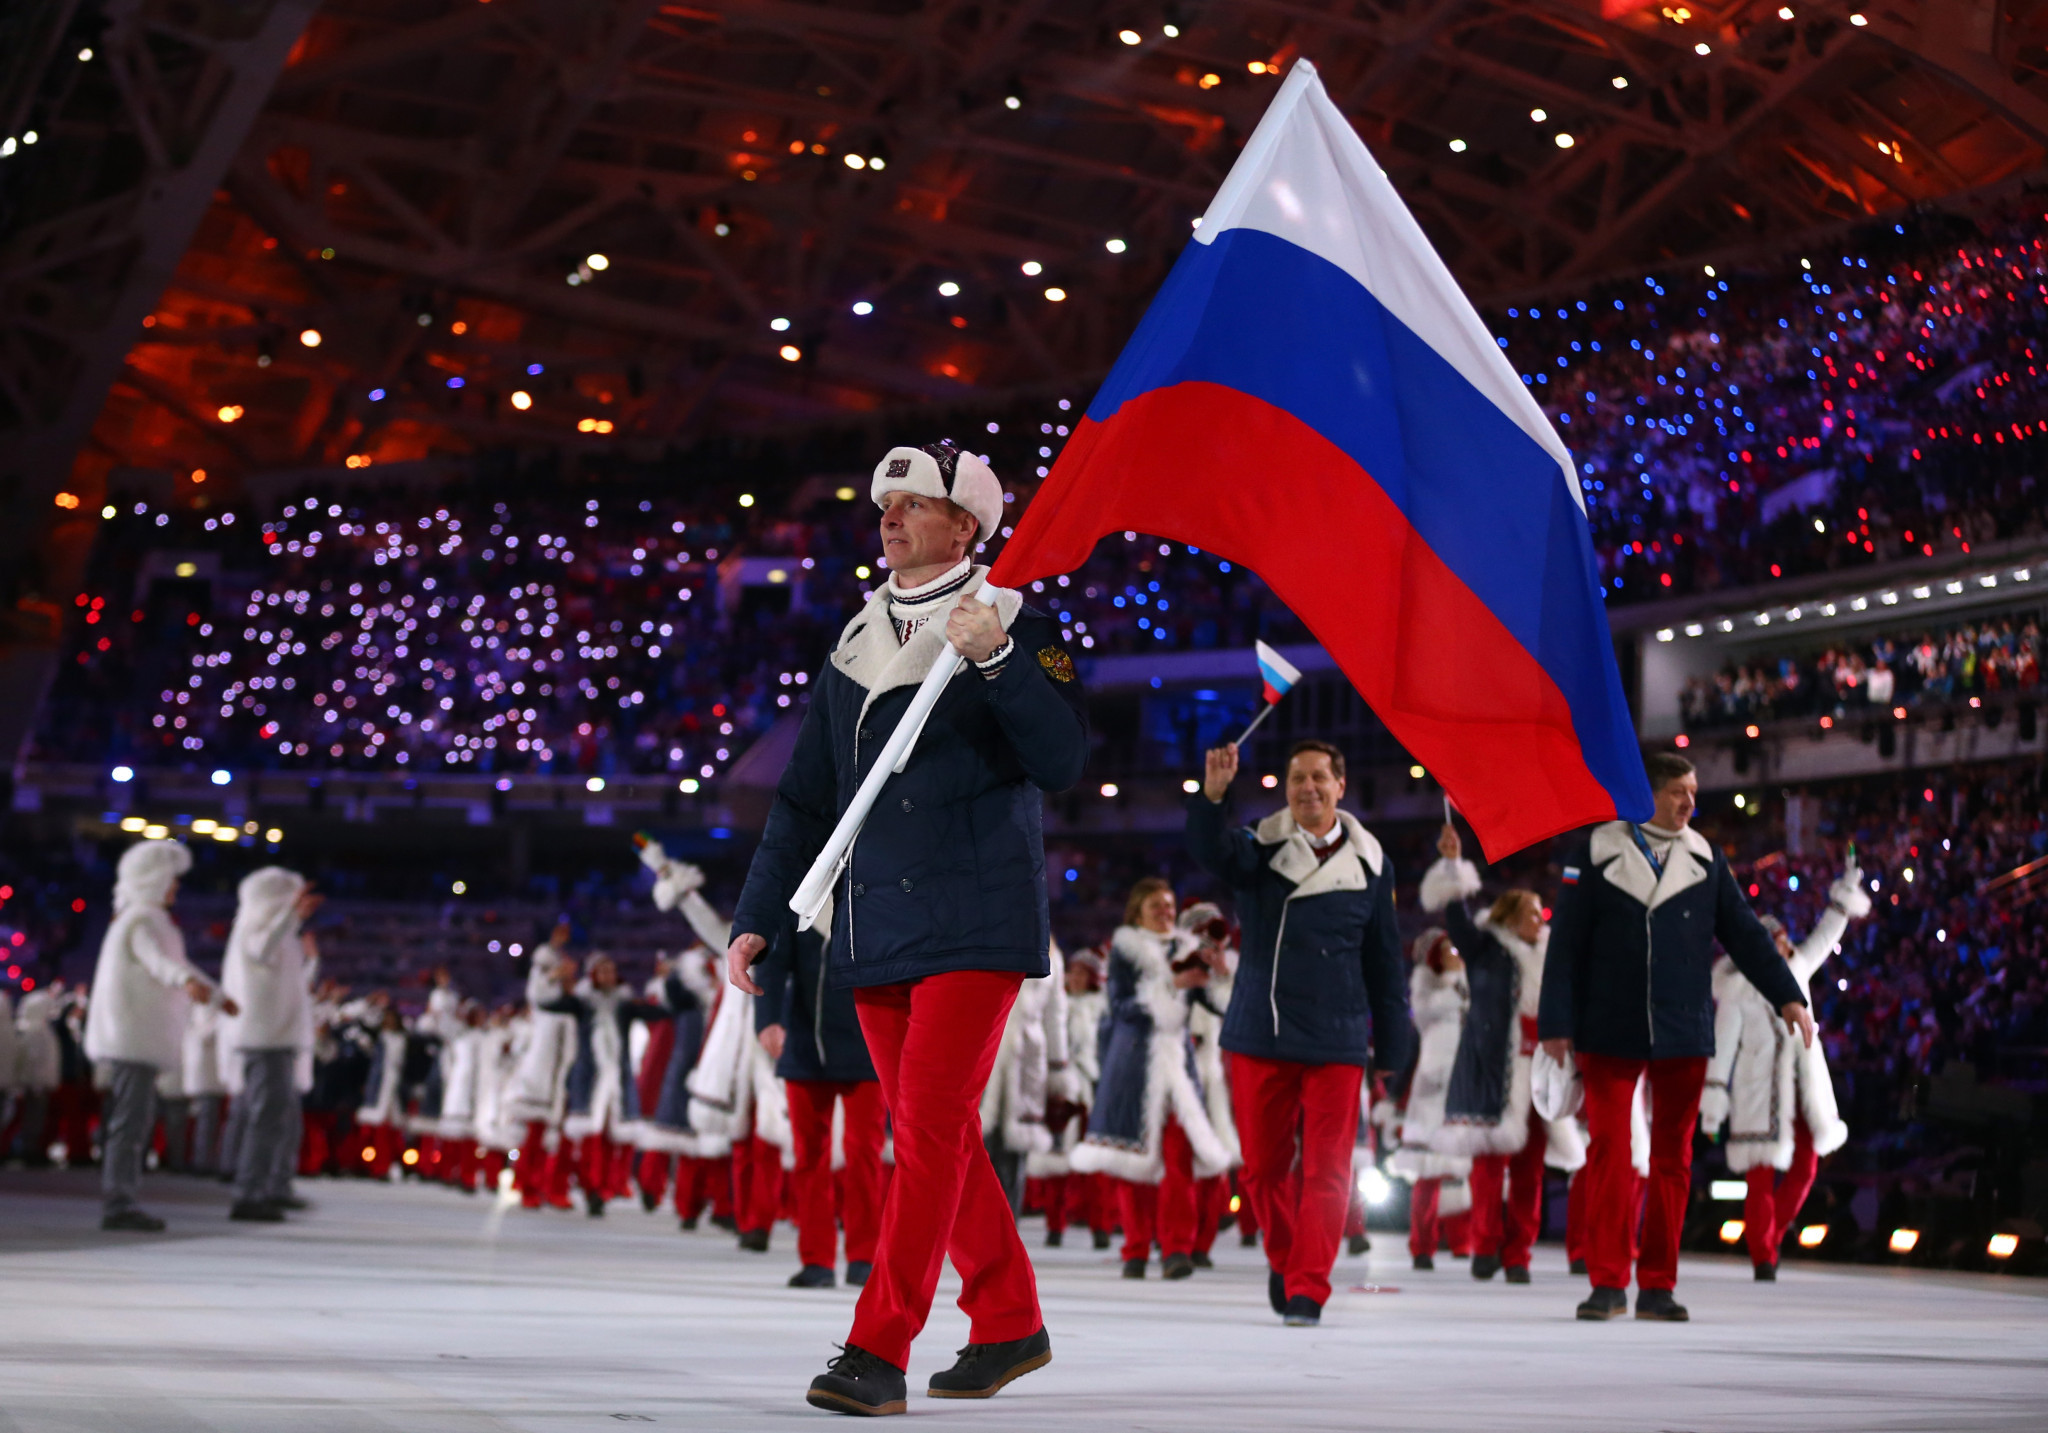 International Olympic Committee  decides on pool of clean Russian athletes for PyeongChang 2018